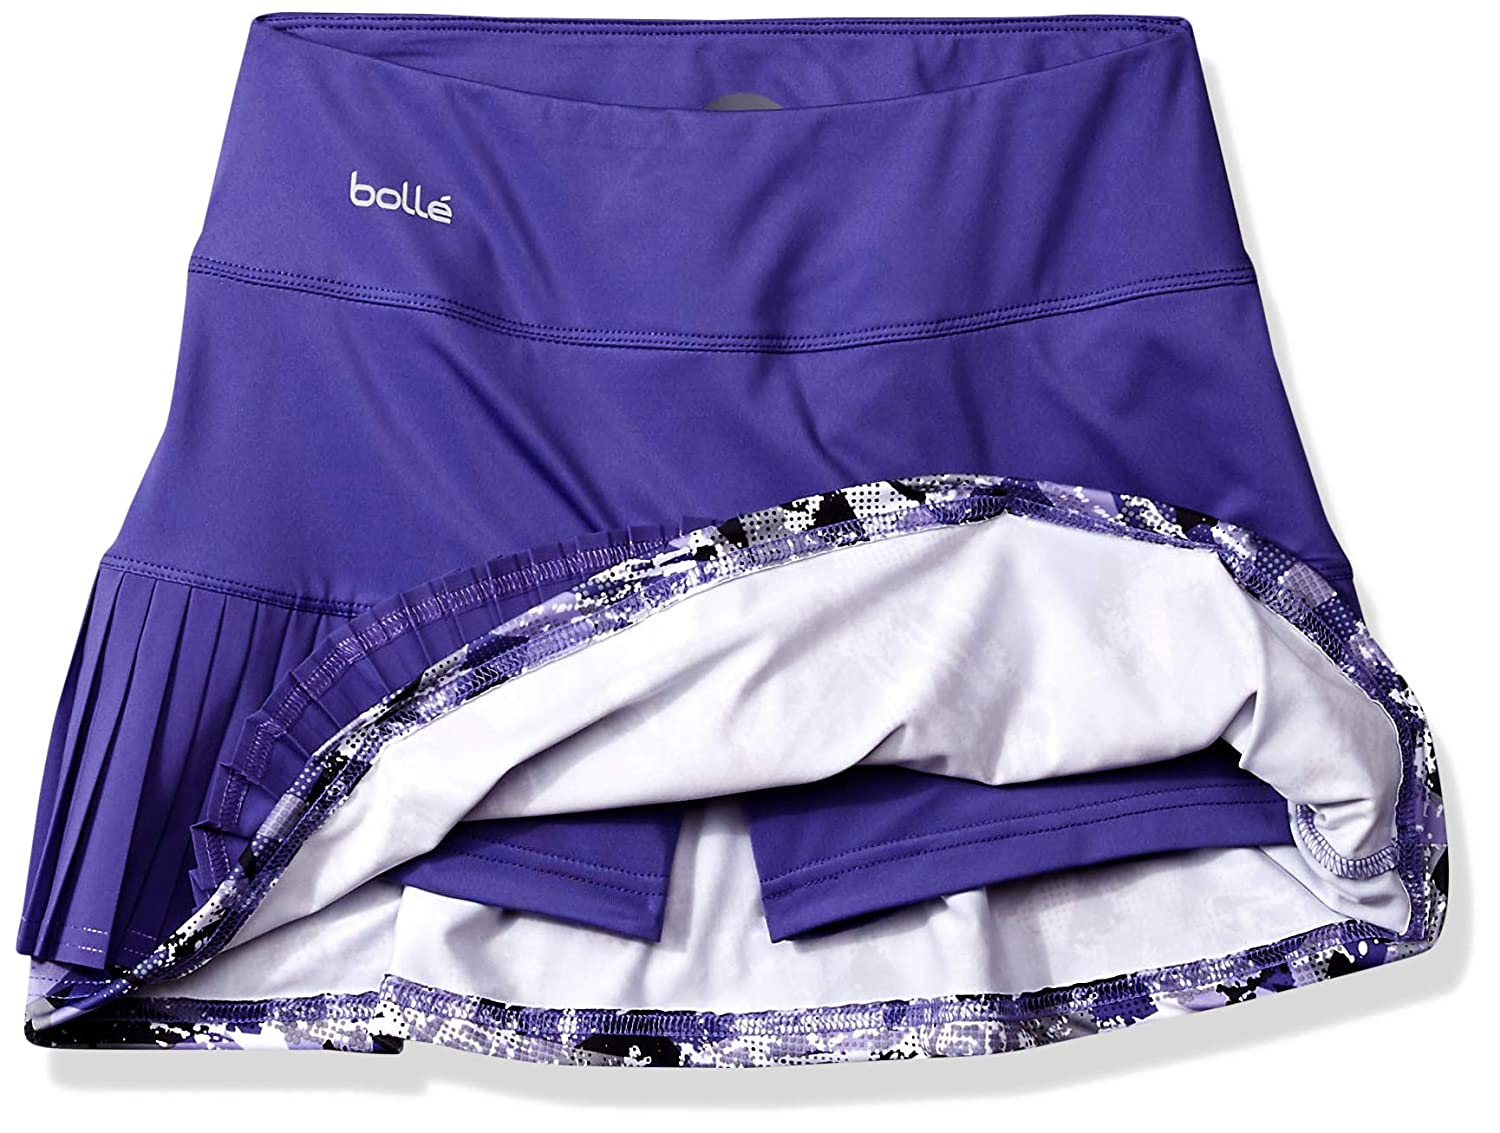 Boll/é Purple Passion Multi-Pleat Tennis Skirt with Built in Short Purple Passion